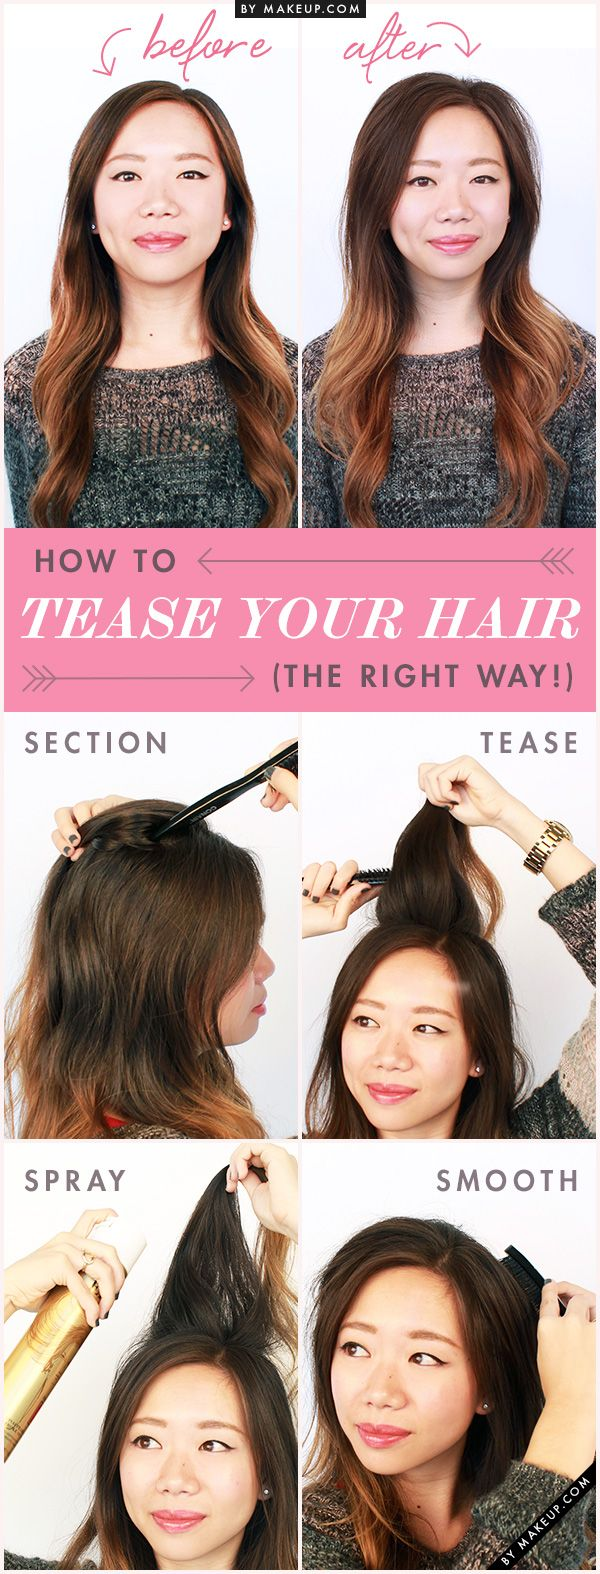 Are you teasing your hair the right way? These tips and tricks will make sure you're doing it right. Here's how to tease for more volume!